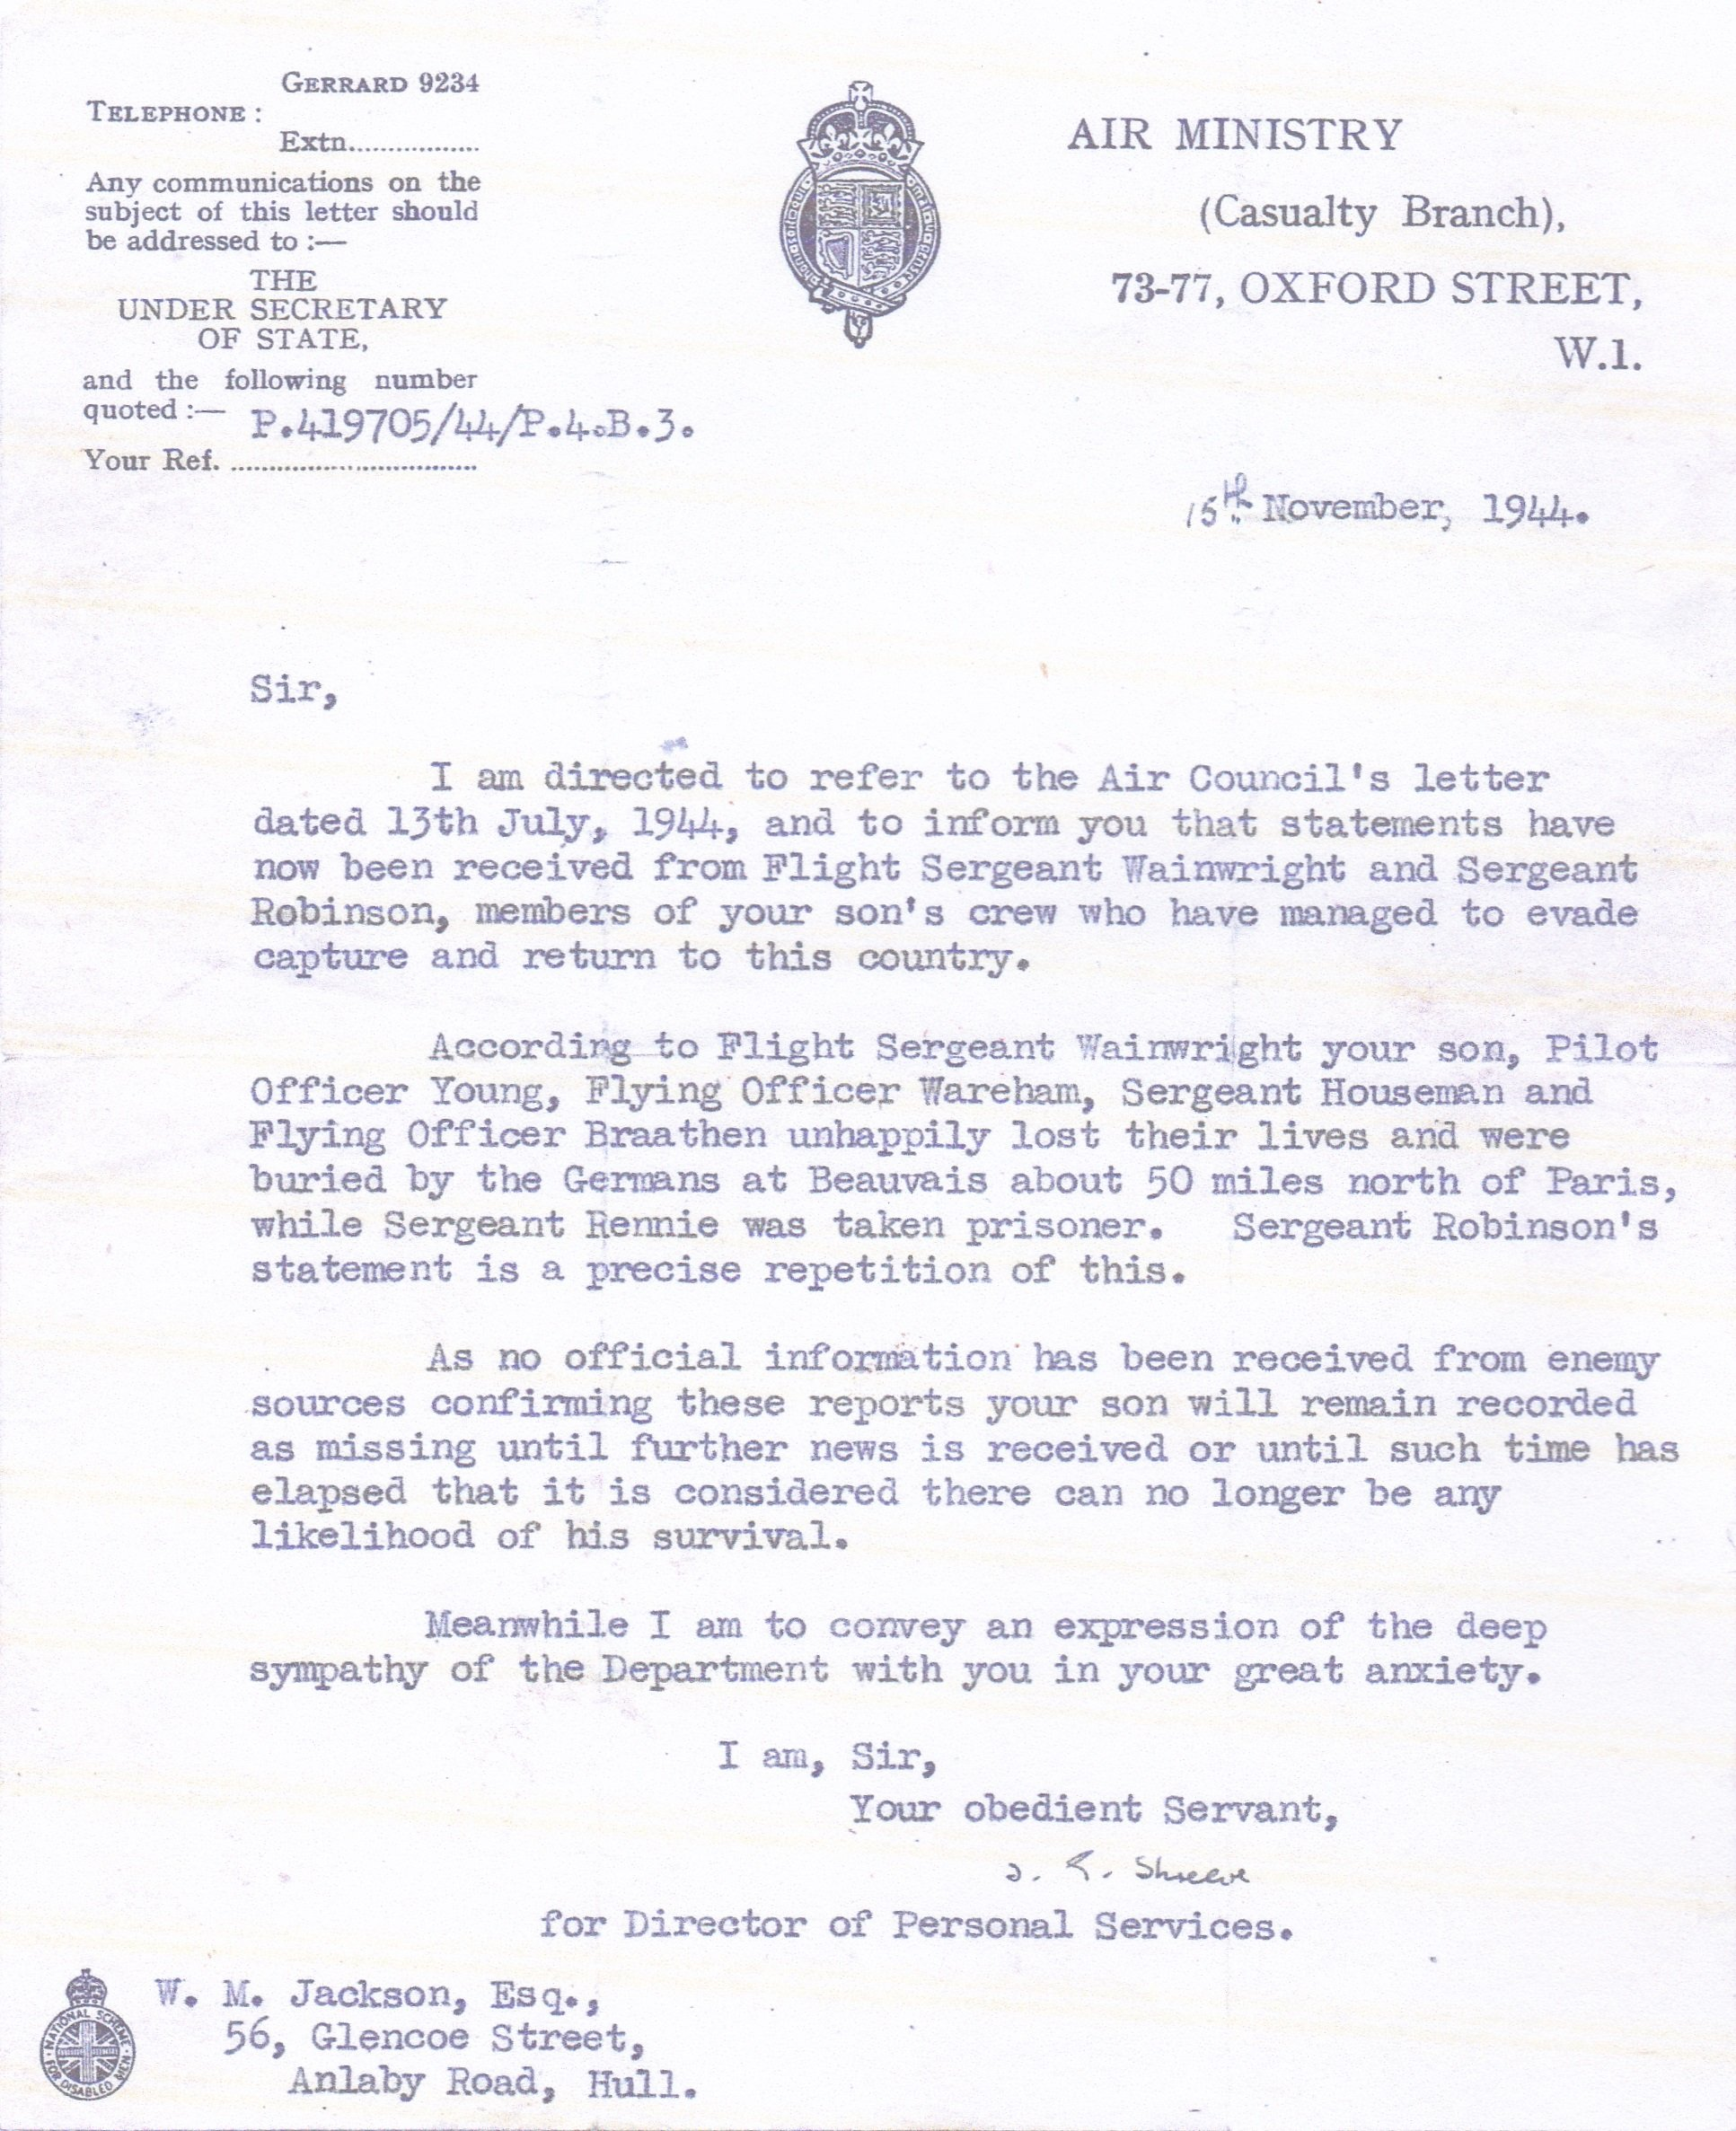 Air Minisrty Letter 15th Novembr 1944